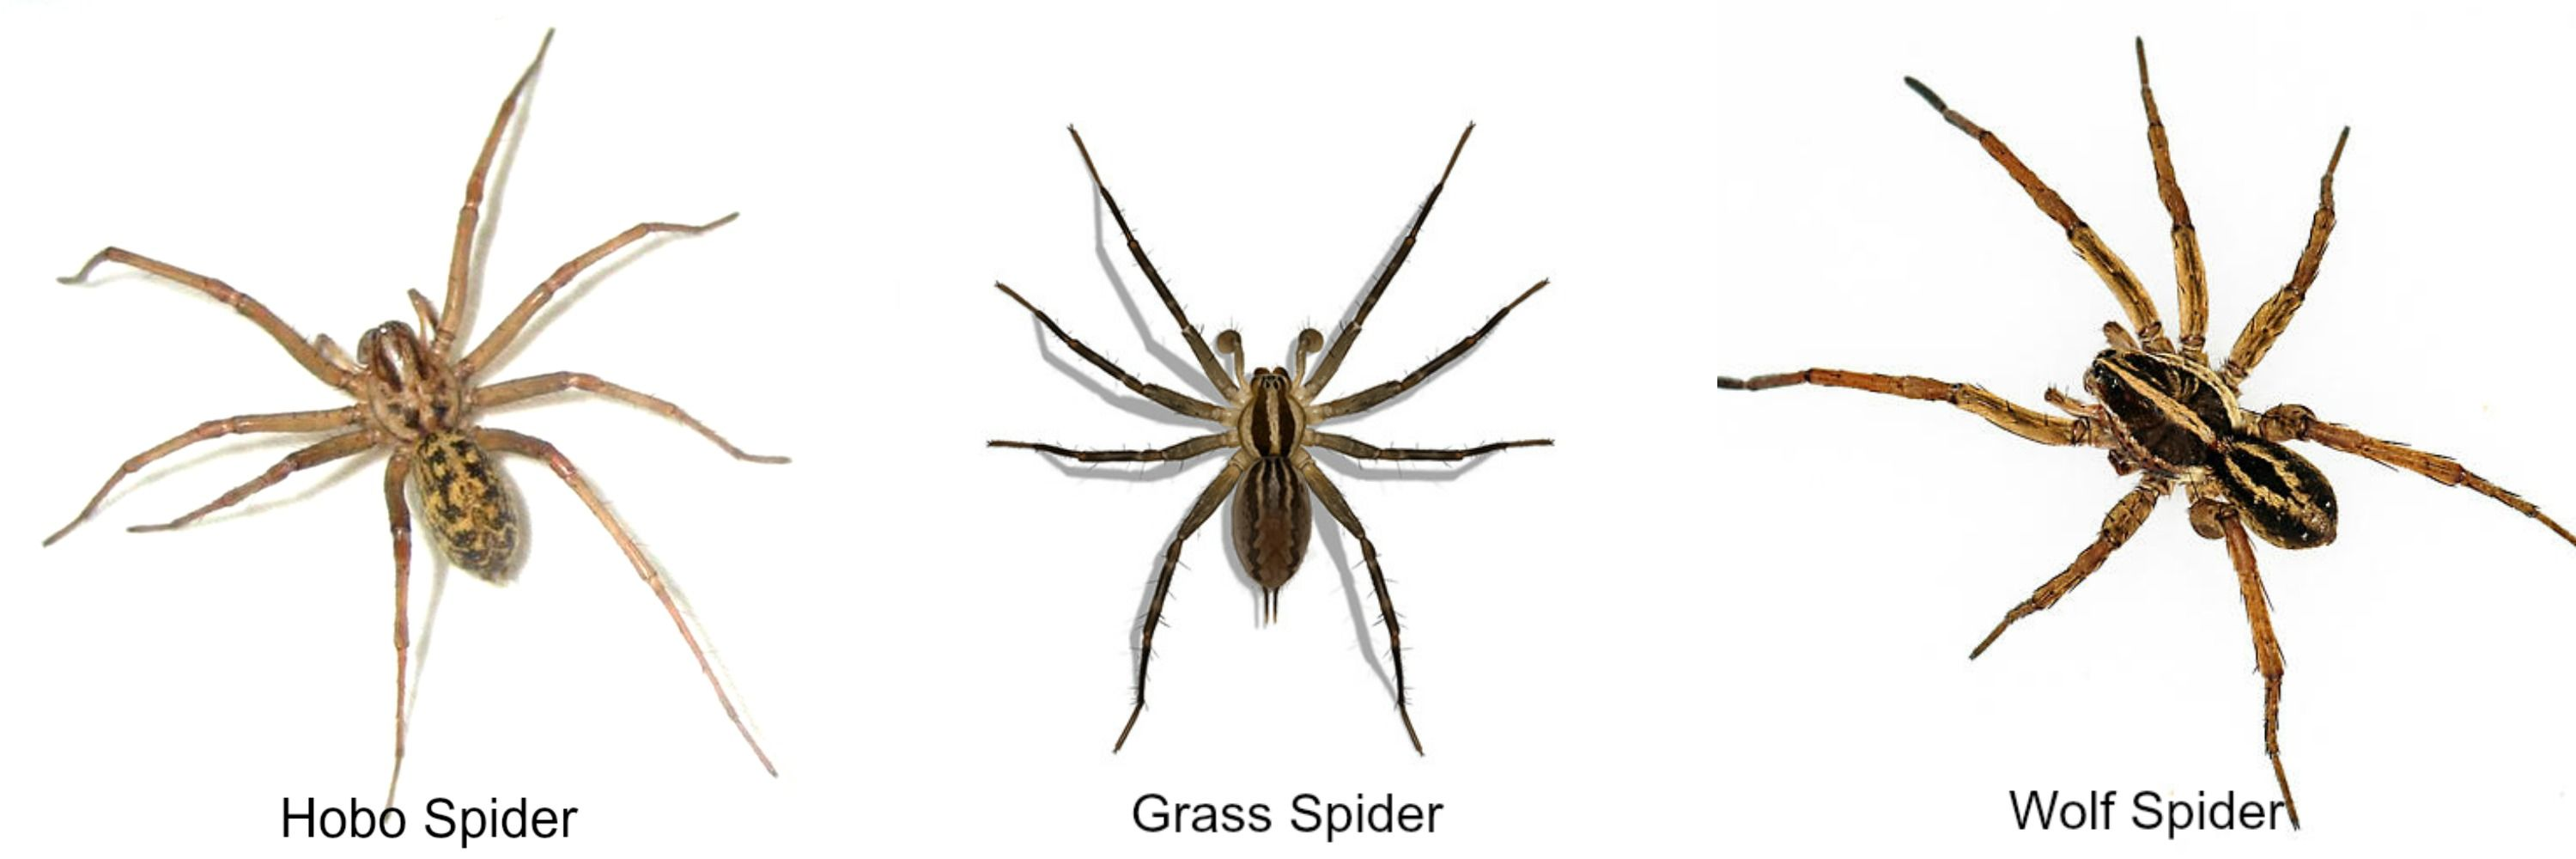 Wolf Spider Vs Grass Spider Vs Hobo Spider Insects Pests